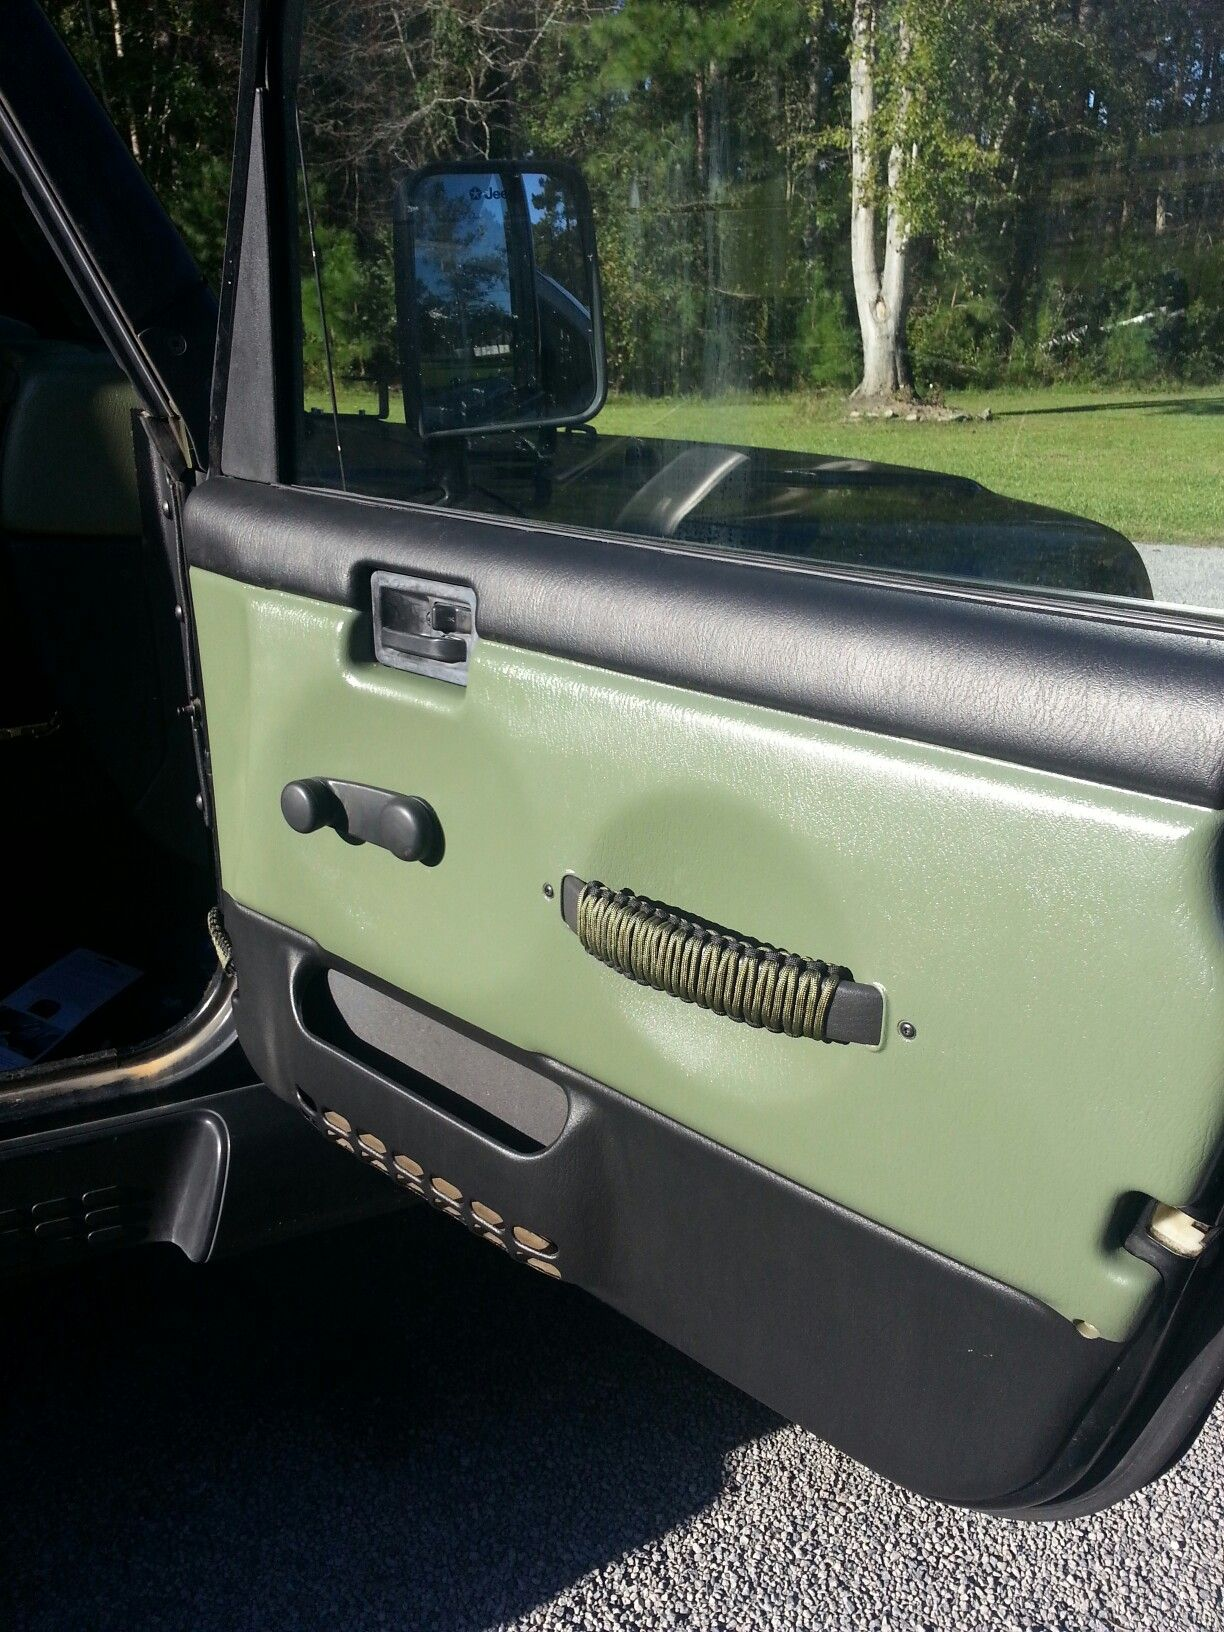 Pin By Jon Luttrell On Jeep Stuff In 2020 Jeep Wrangler Interior